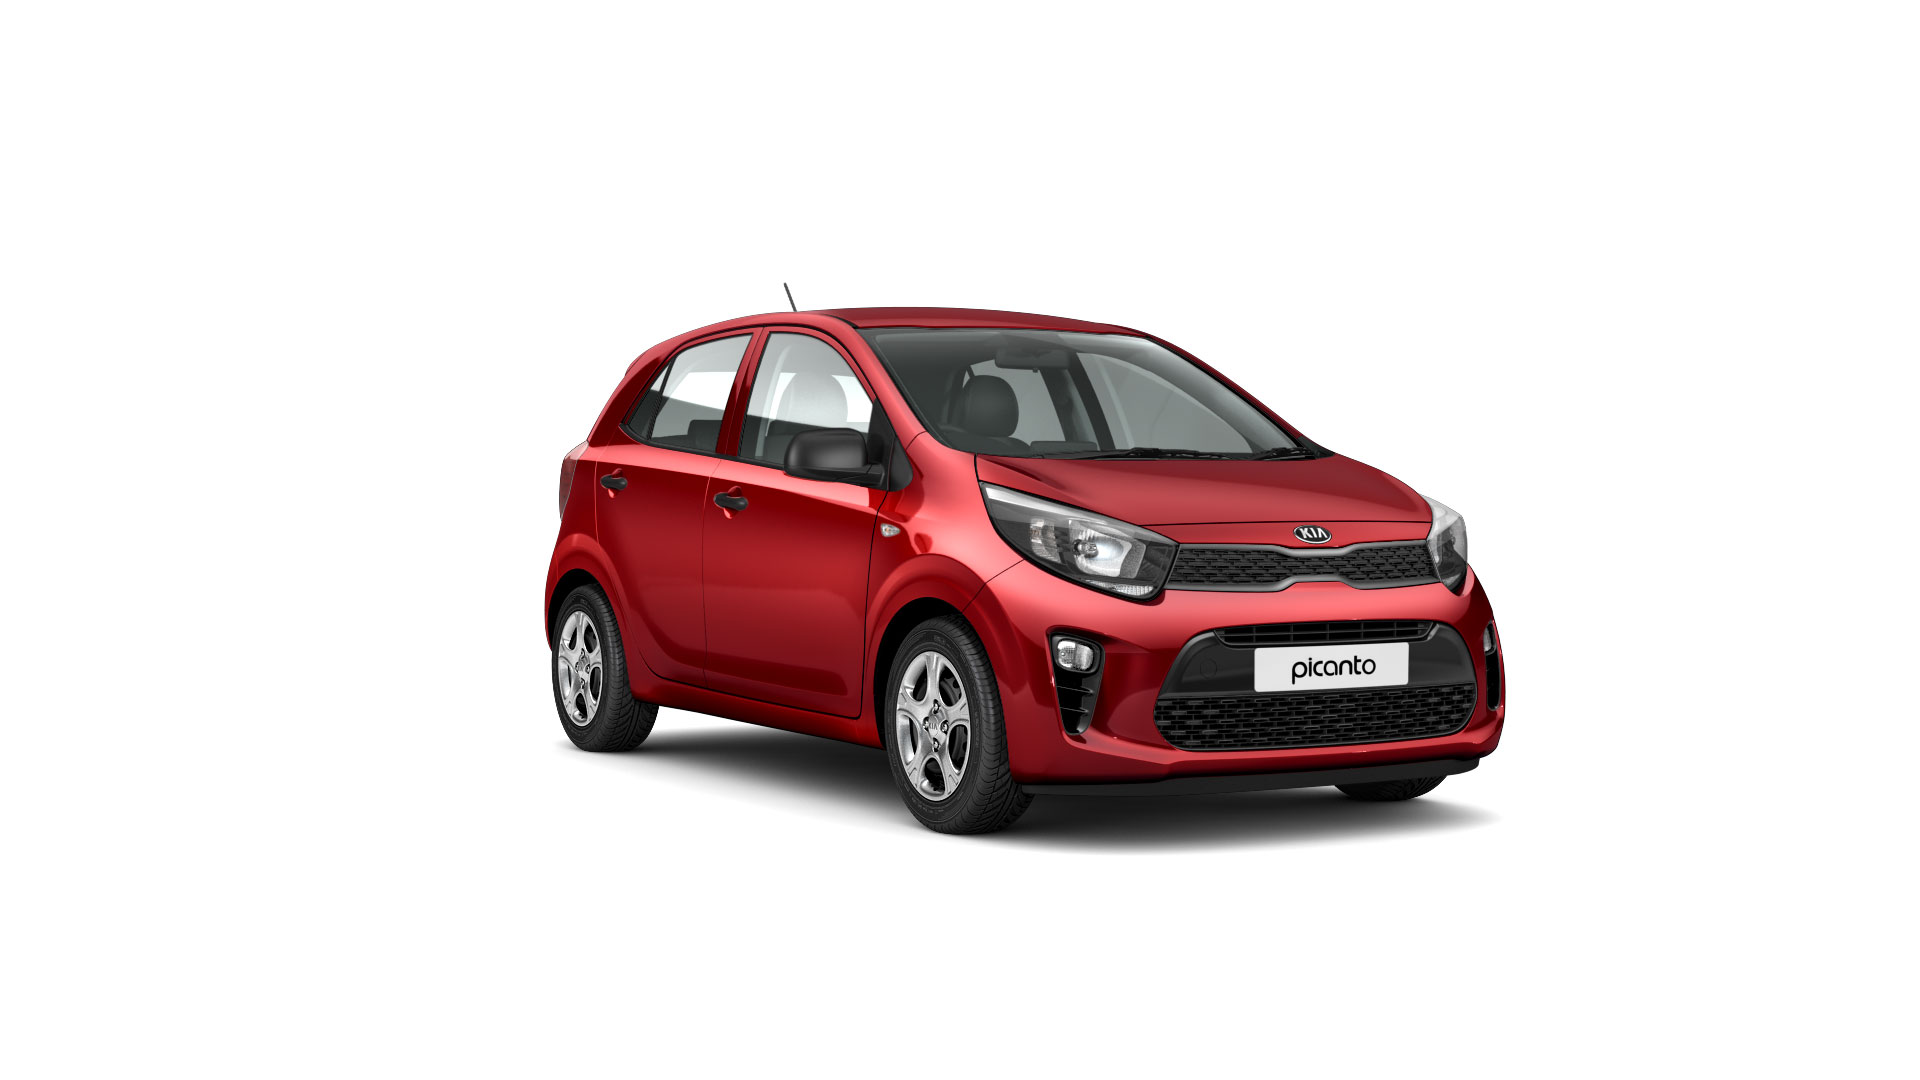 kia picanto 39 1 39 from 99 per month via pcp special offers at wilsons of rathkenny kia new. Black Bedroom Furniture Sets. Home Design Ideas